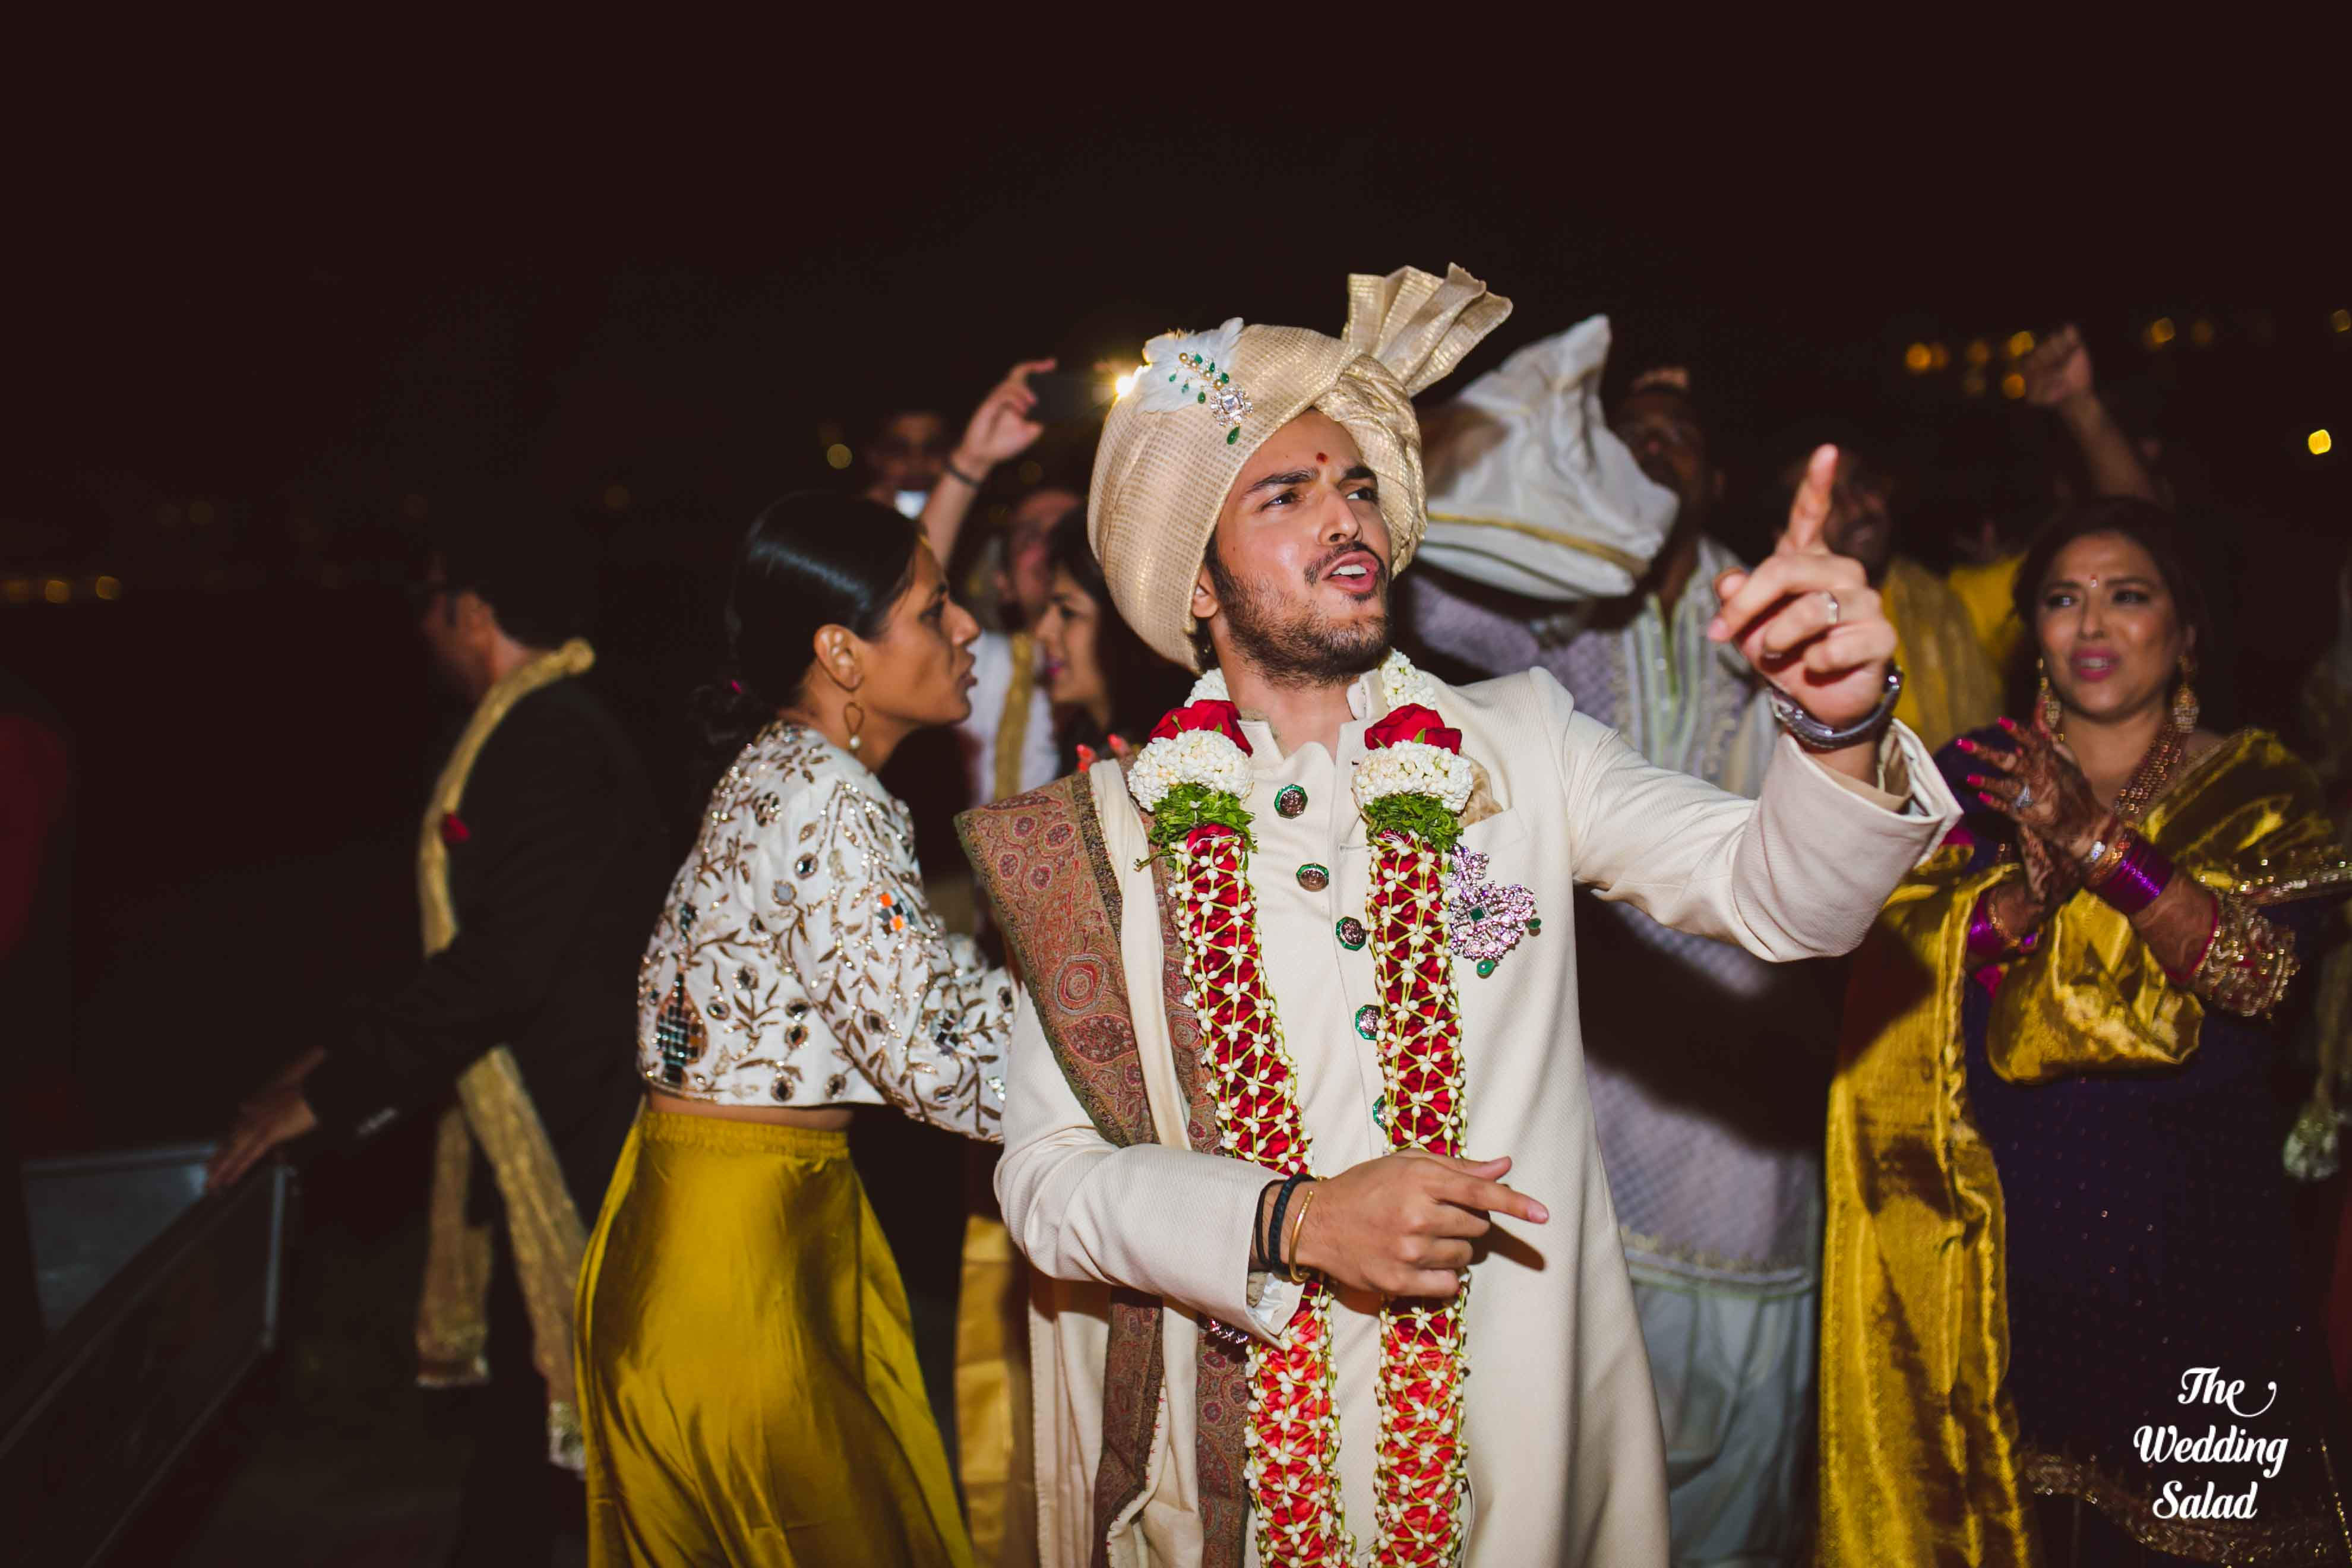 the dapper groom!:the wedding salad, manish malhotra, arpita mehta, sabyasachi couture pvt ltd